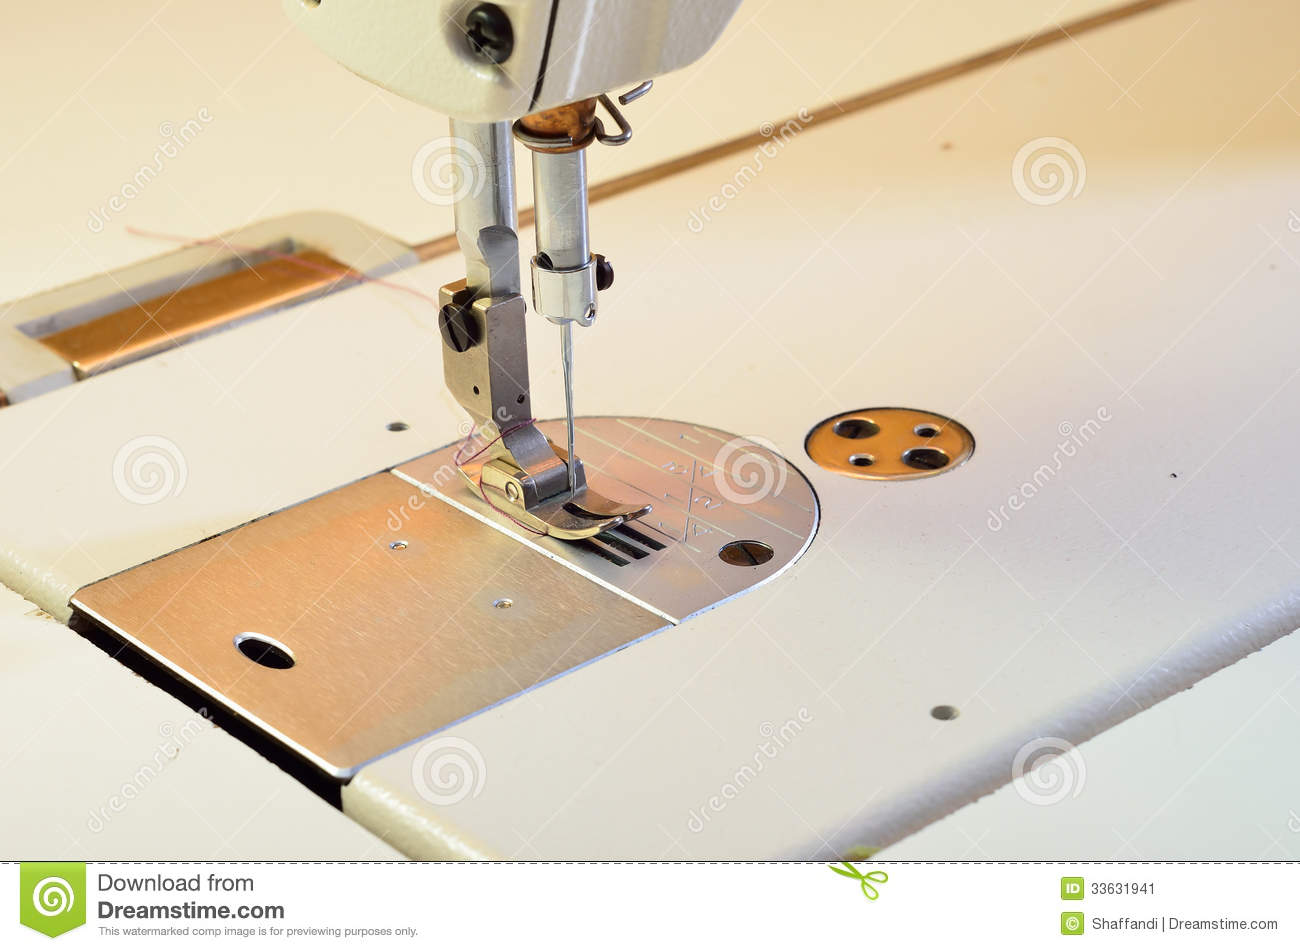 how to close a seam with a sewing machine